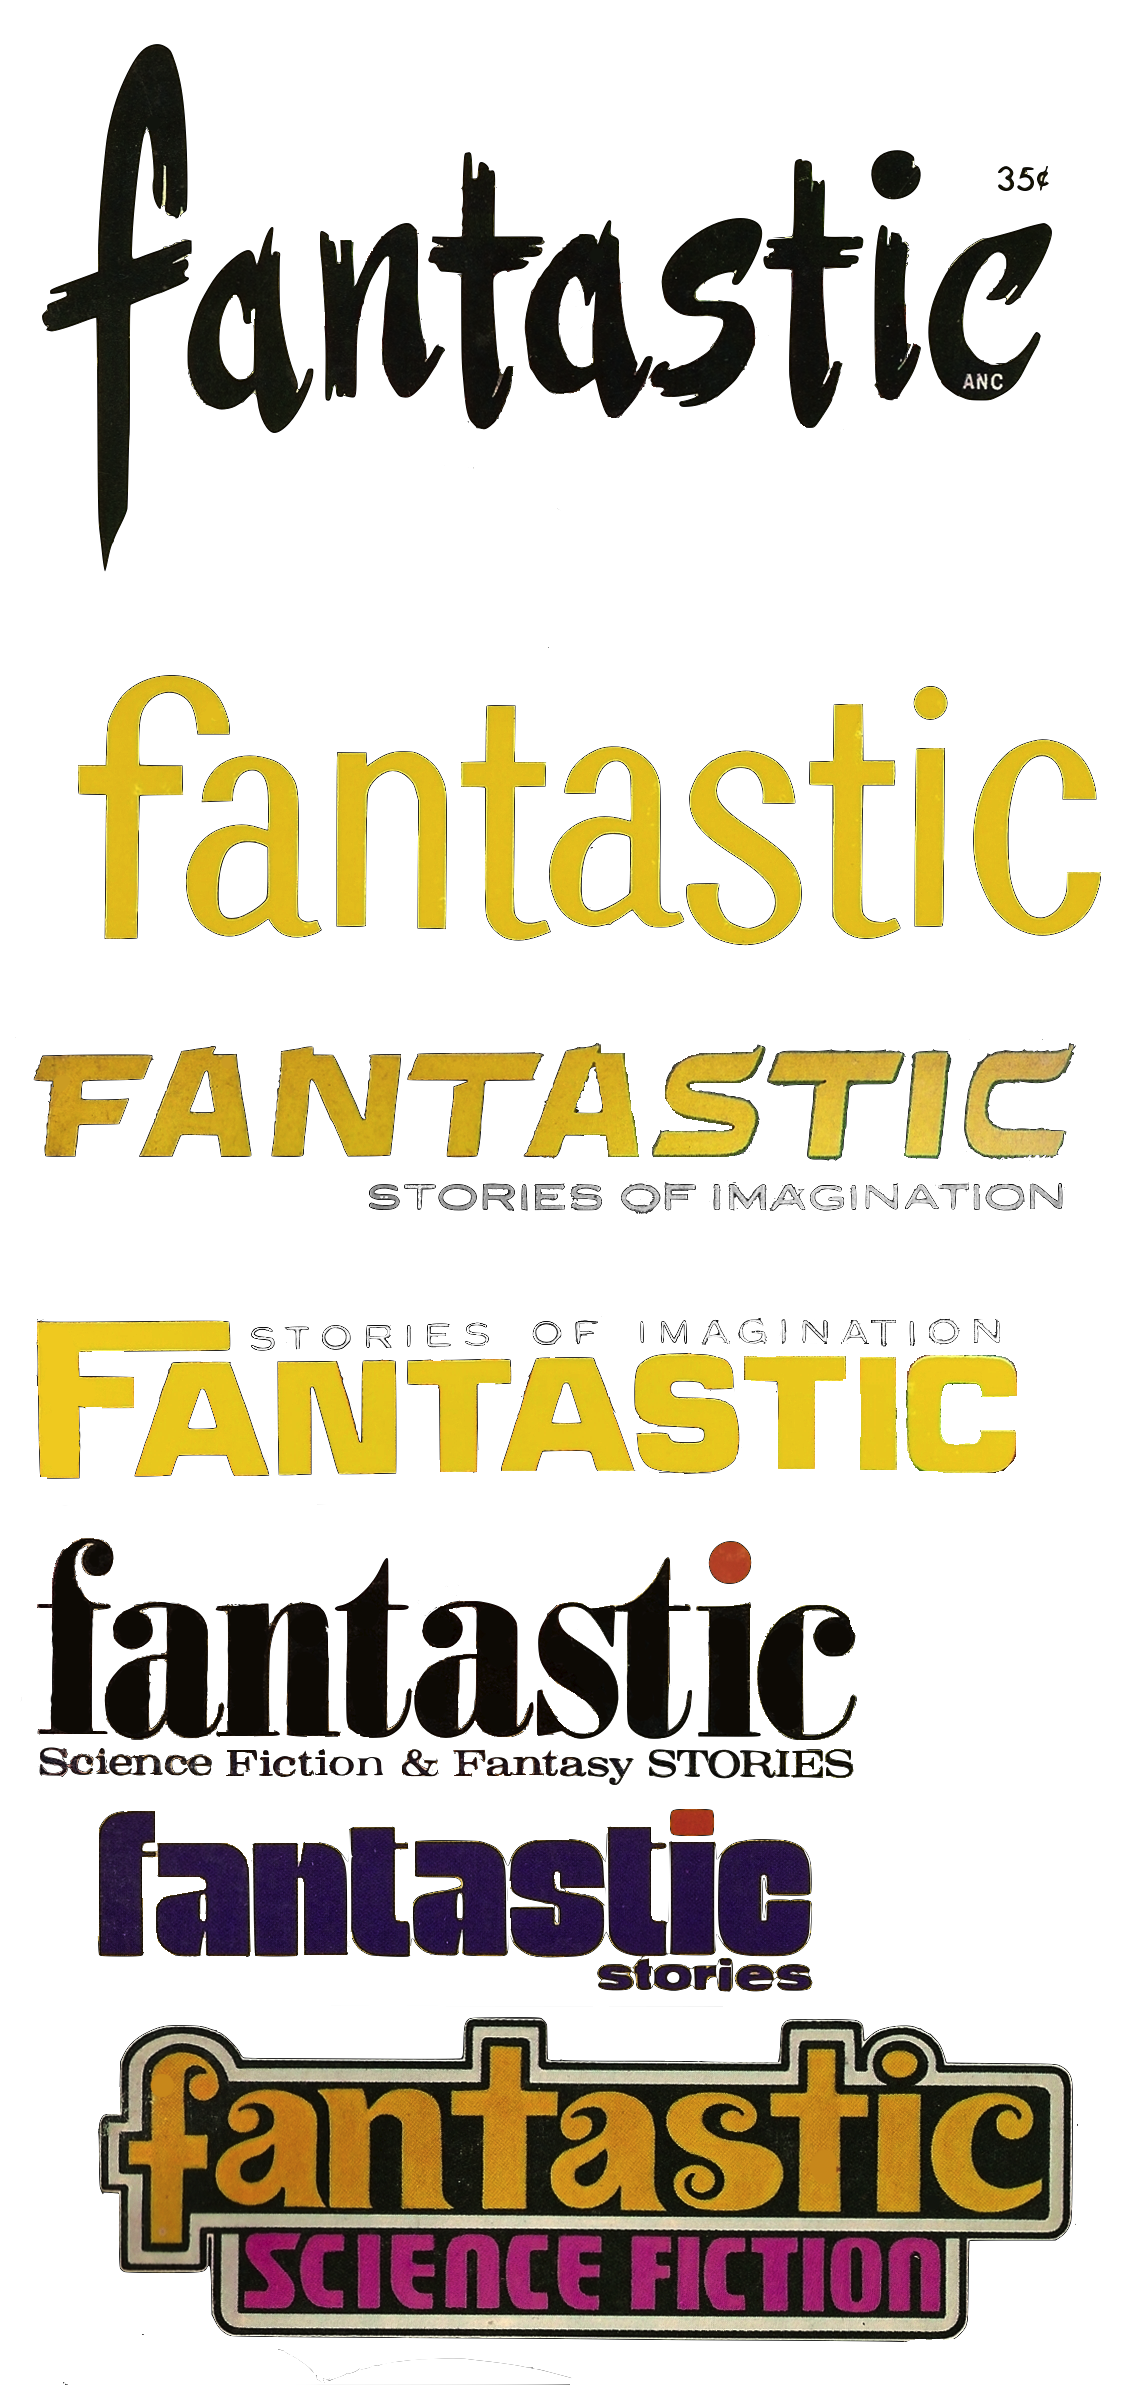 Fantastic_fonts_high_res.png